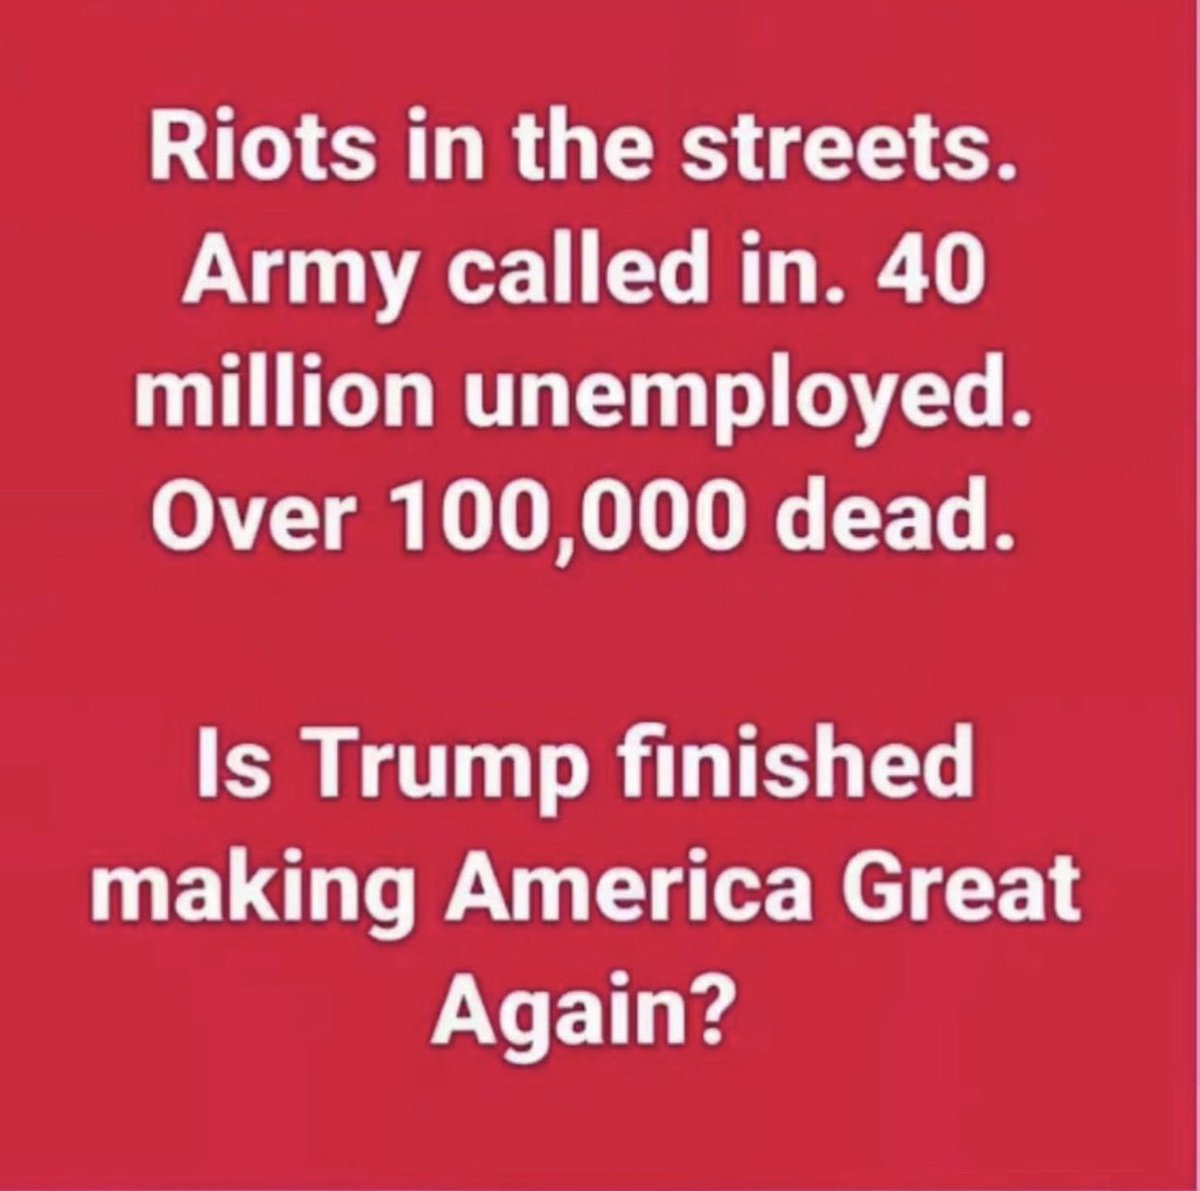 @ColvertJenna @pappyG45 @CQWarrior1 Trump is toast and you know it MAGAt. History will not be kind to the Coward in Chief #WorstPresidentInHistory #TrumpDeathToll100K #CadetBoneSpurs #CowardinChief https://t.co/lZgZLlFL1Q